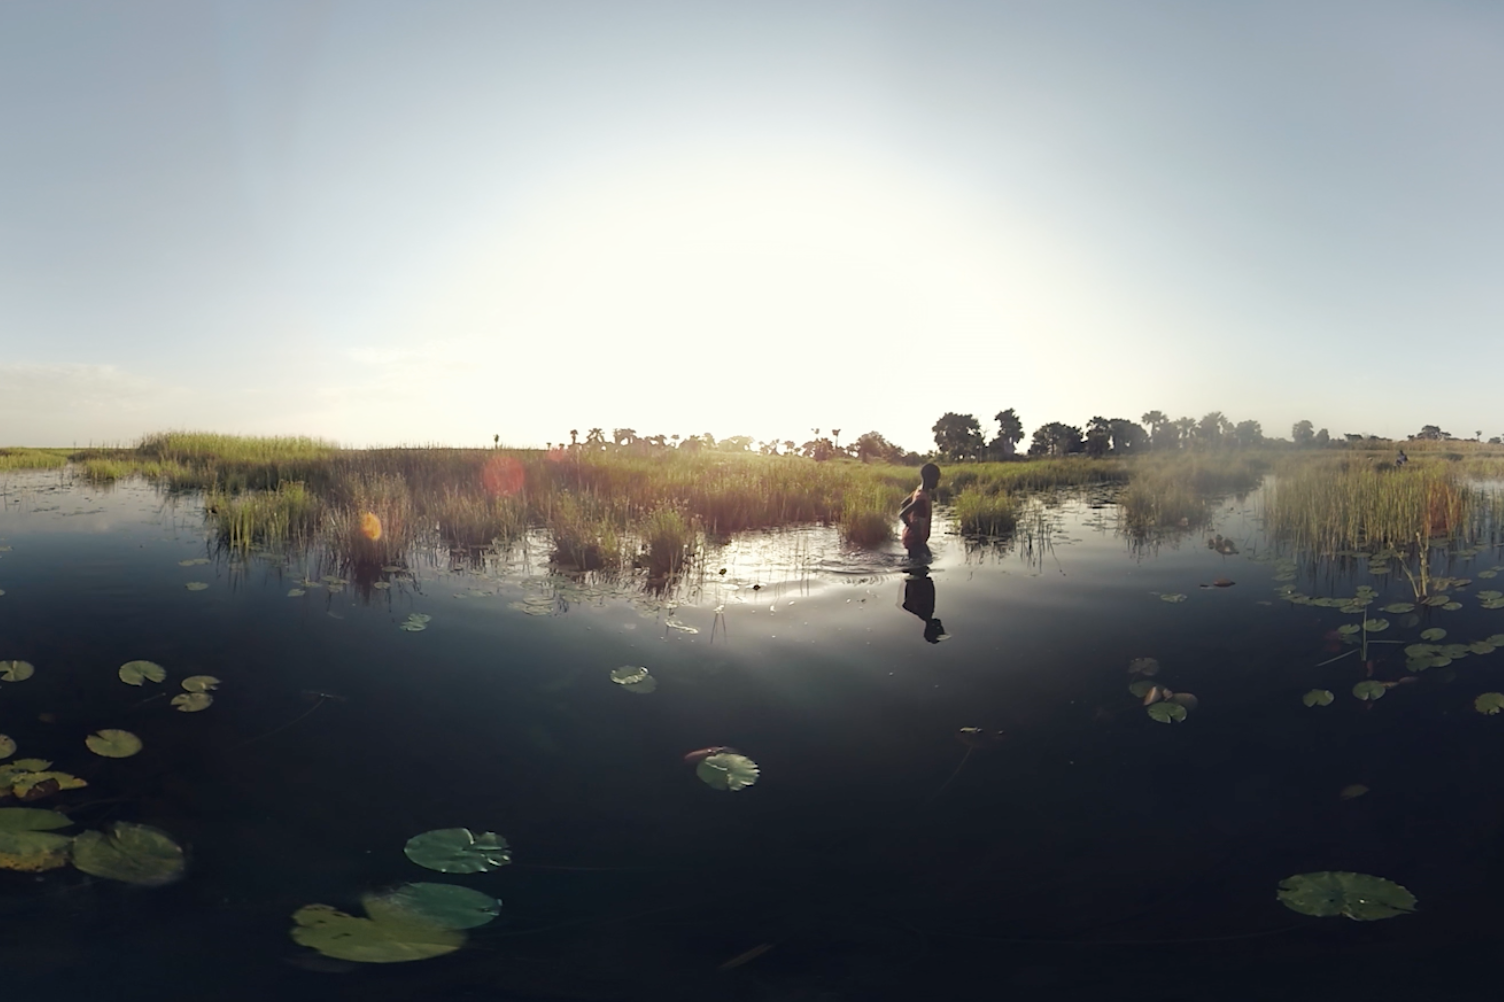 The New York Times VR app launches with portraits of refugee children